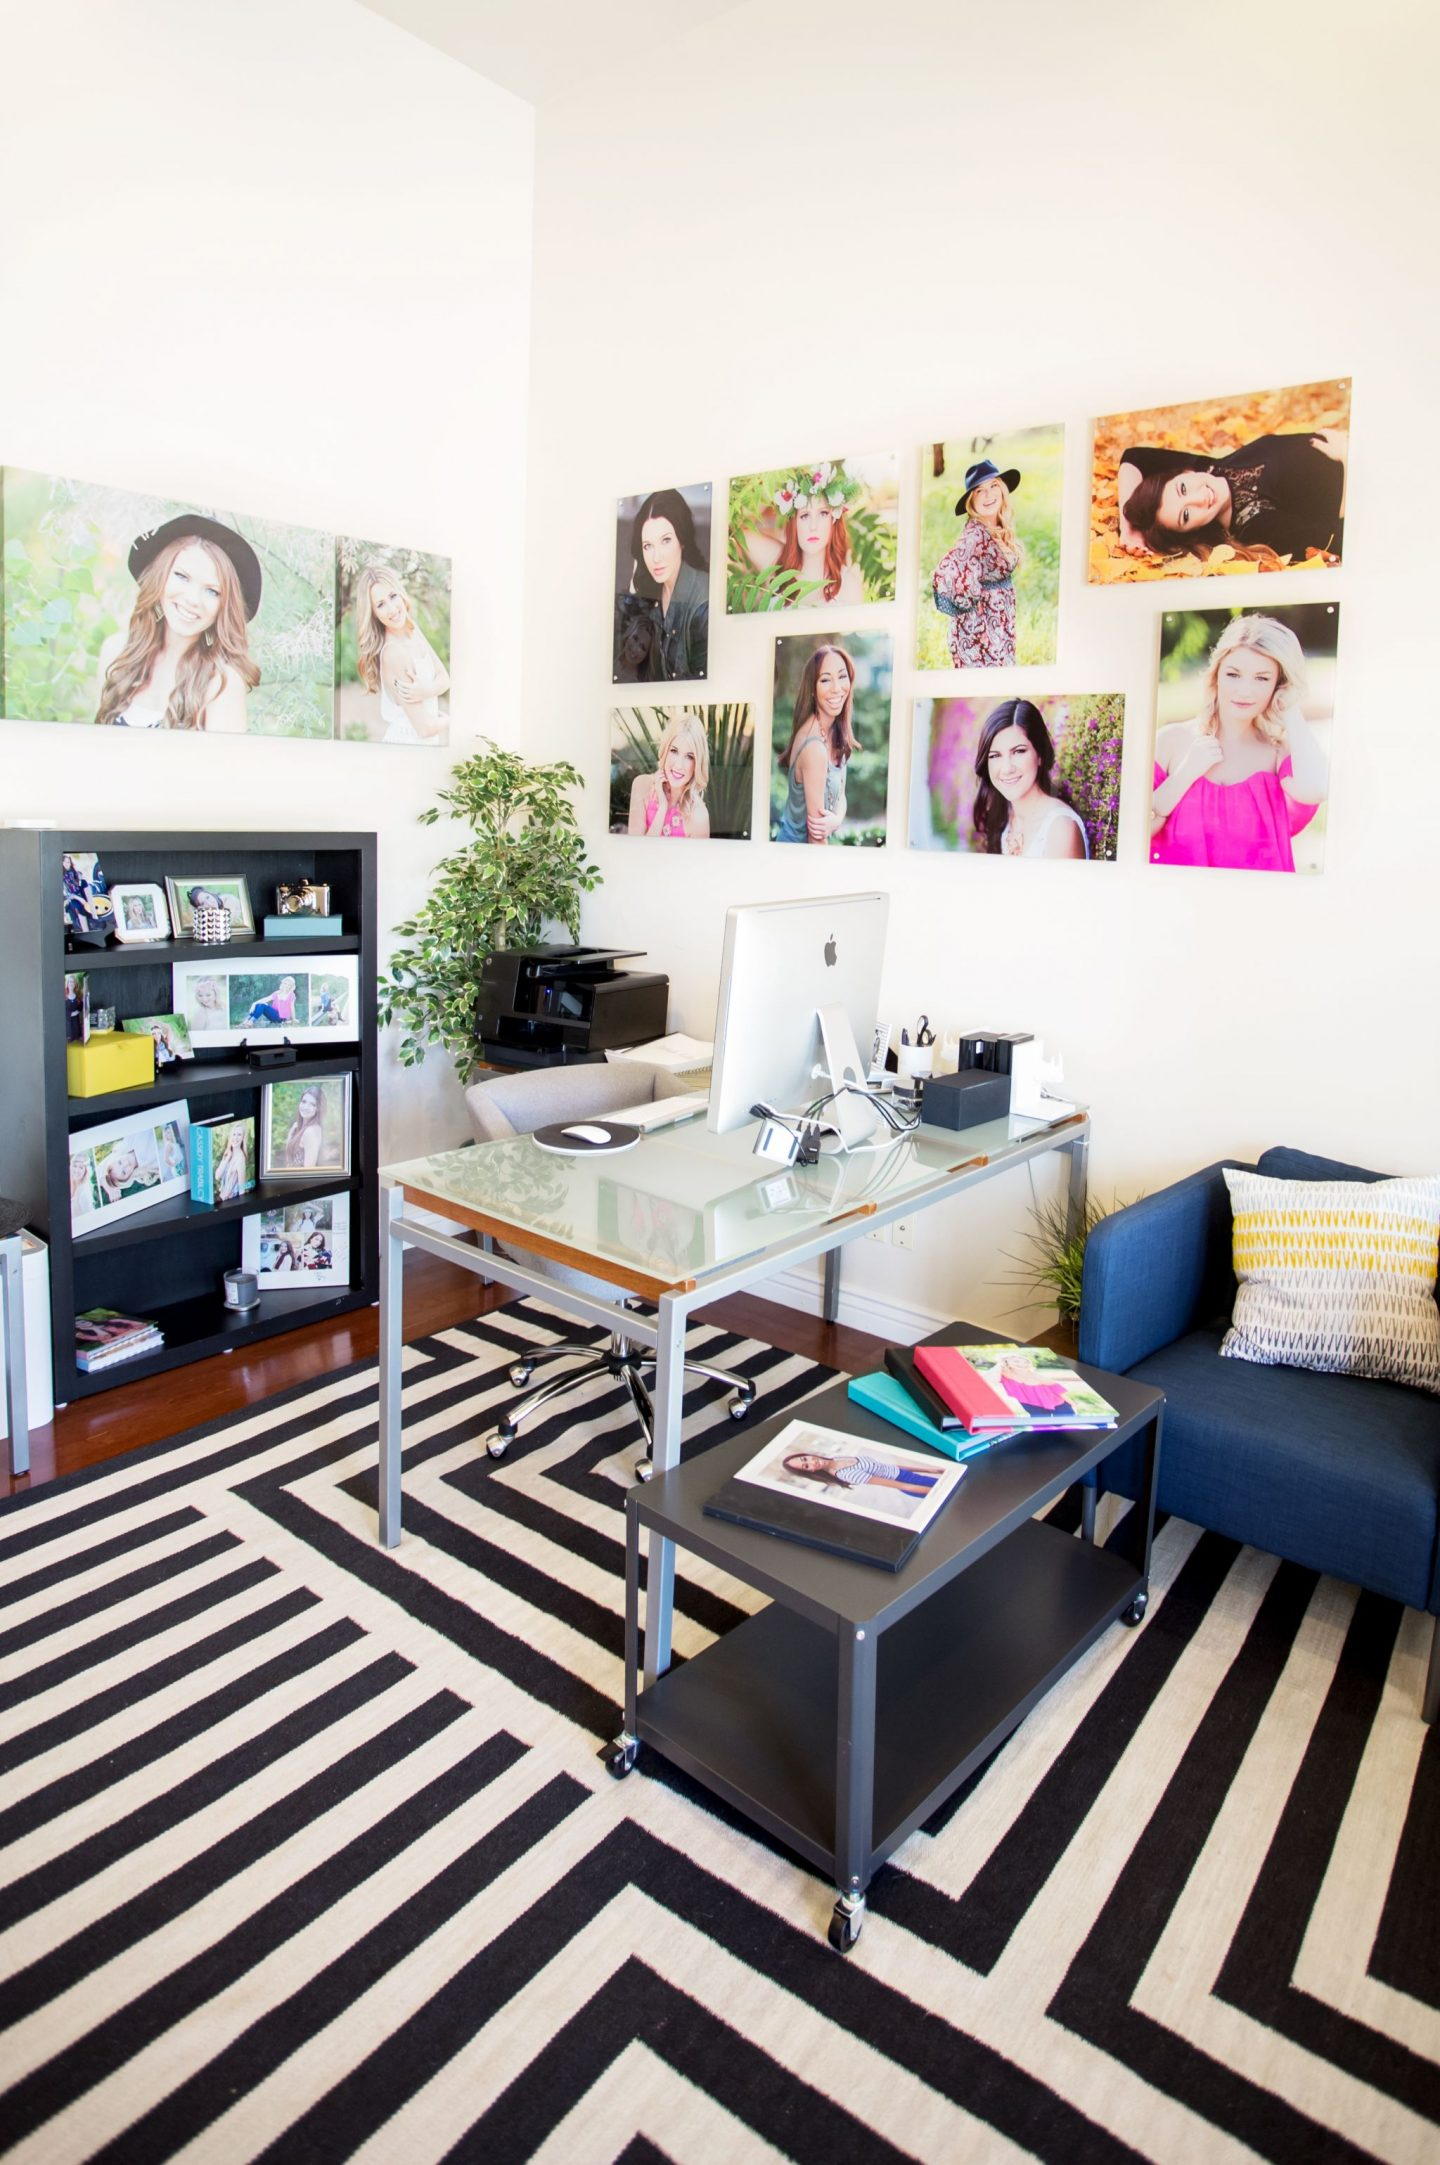 Home Remodel, Home Office, Modern Decor